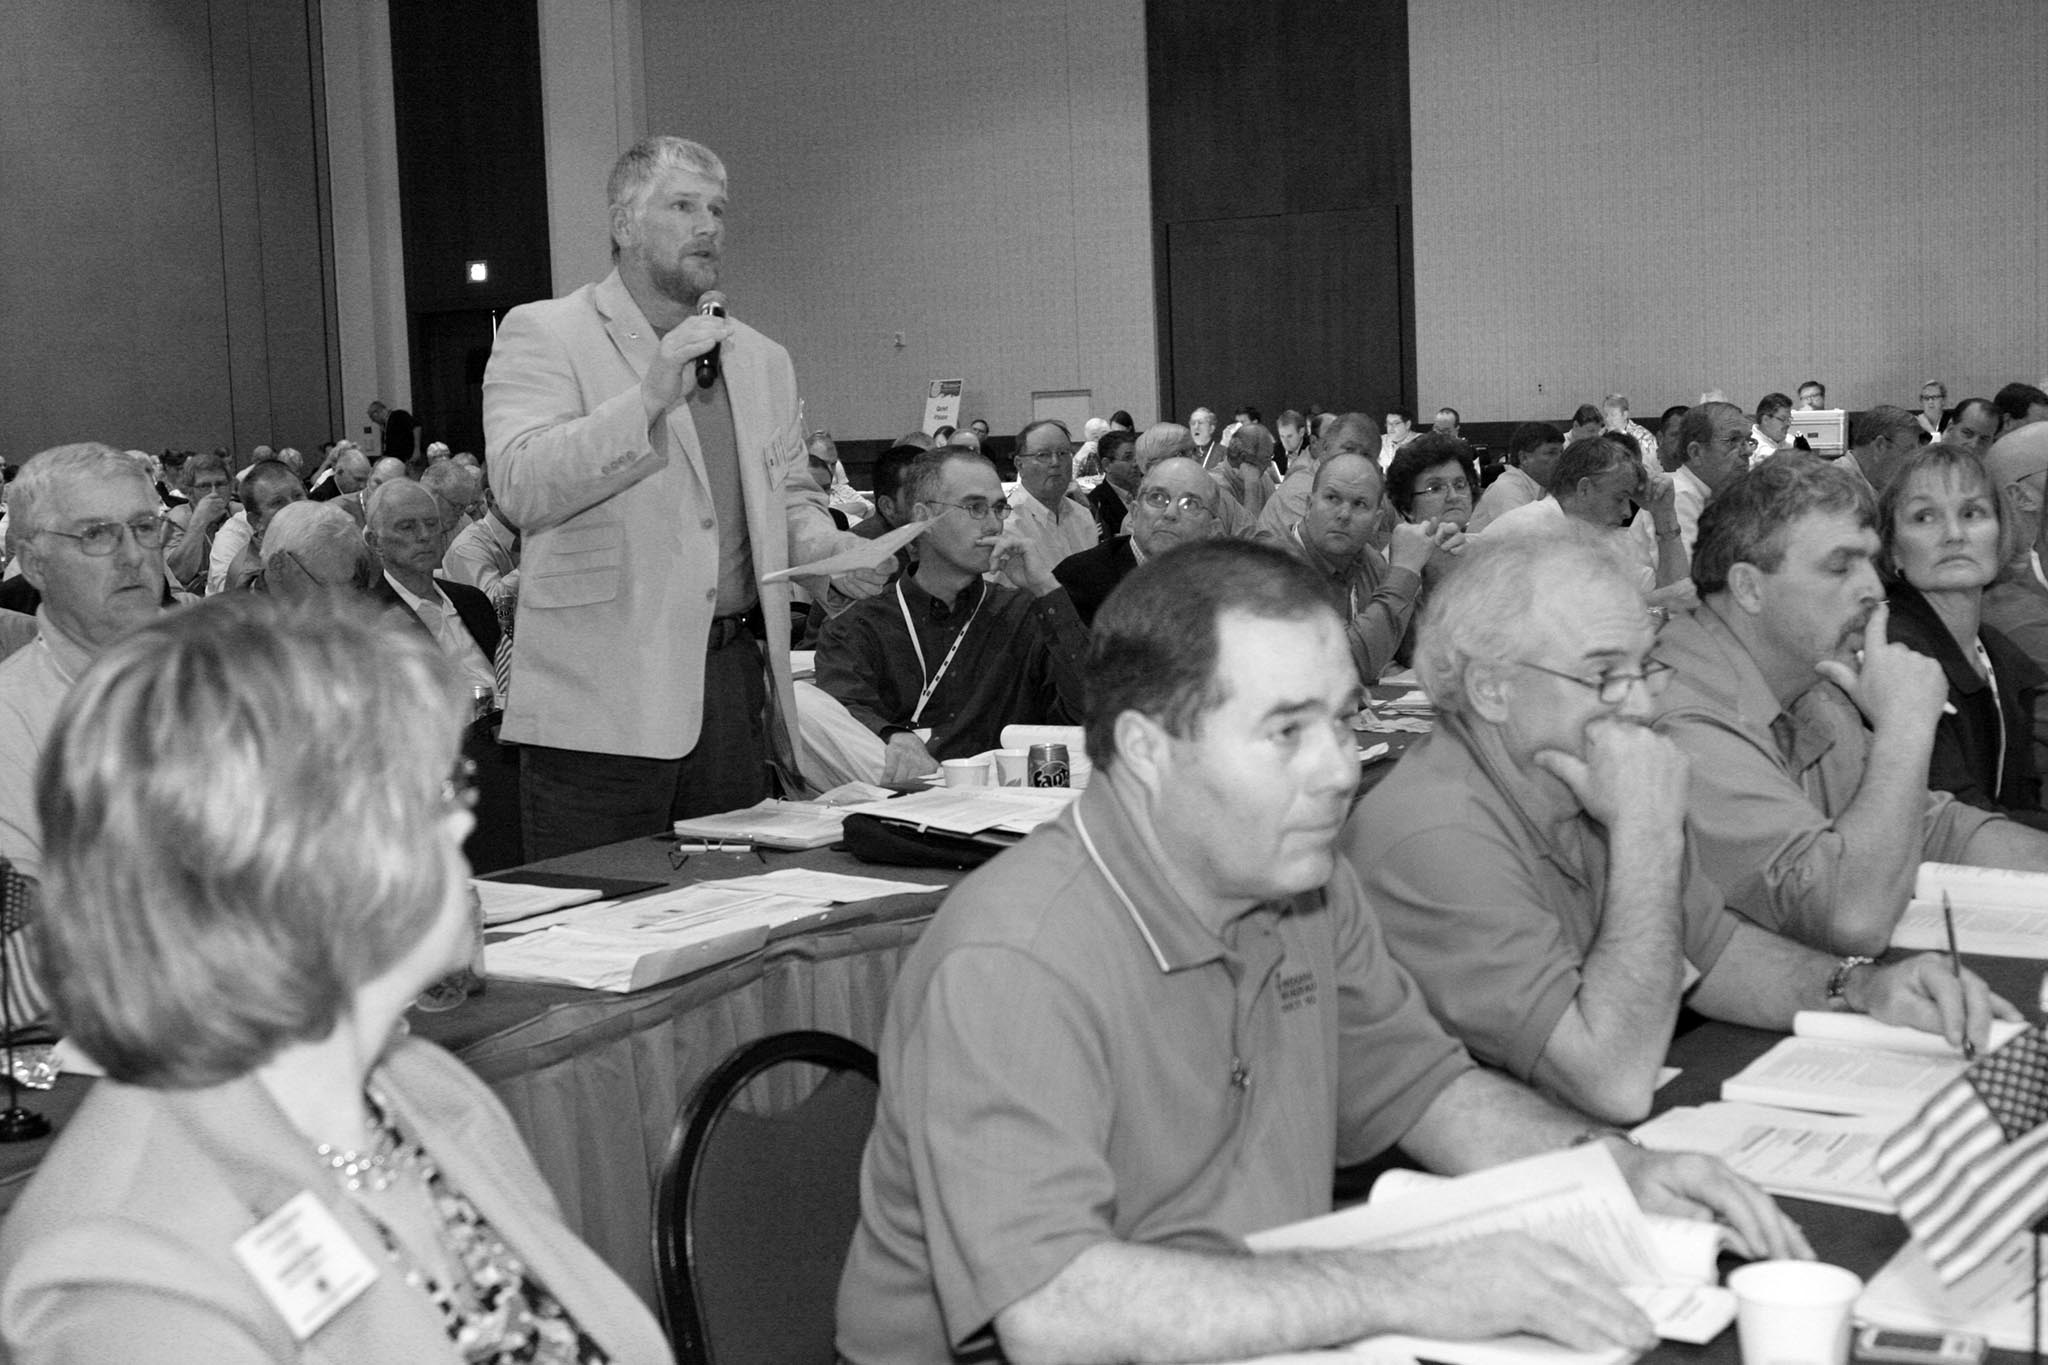 With a 2012 deadline for a new farm bill looming on the horizon, Oklahoma Farm Bureau members created a farm bill committee to study the current farm program, consult agricultural experts, and present policy proposals to the delegate body to help craft the next iteration of farm policy. This input was taken and approved ideas were sent on for consideration by American Farm Bureau Federation delegates. Here, Scott Neufeld of Major County, a member of the OKFB Farm Bill Committee, speaks at the business session of the 2012 AFBF convention in Honolulu, Hawaii, about a proposed AFBF policy change to the national organization's farm bill policy.